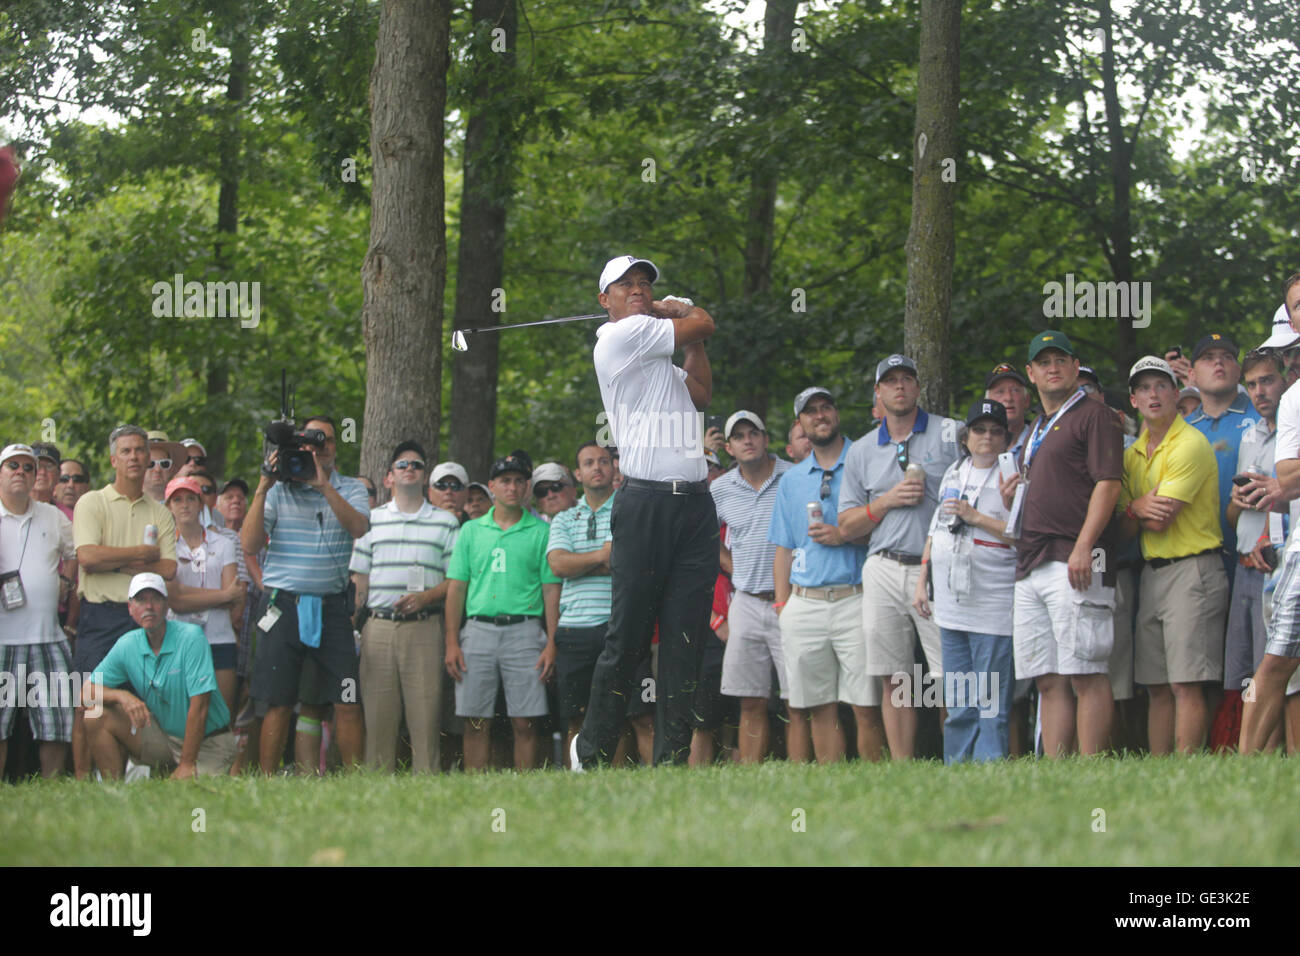 GAINESVILLE, VA - JULY 30: Tiger Woods pictured at round 1